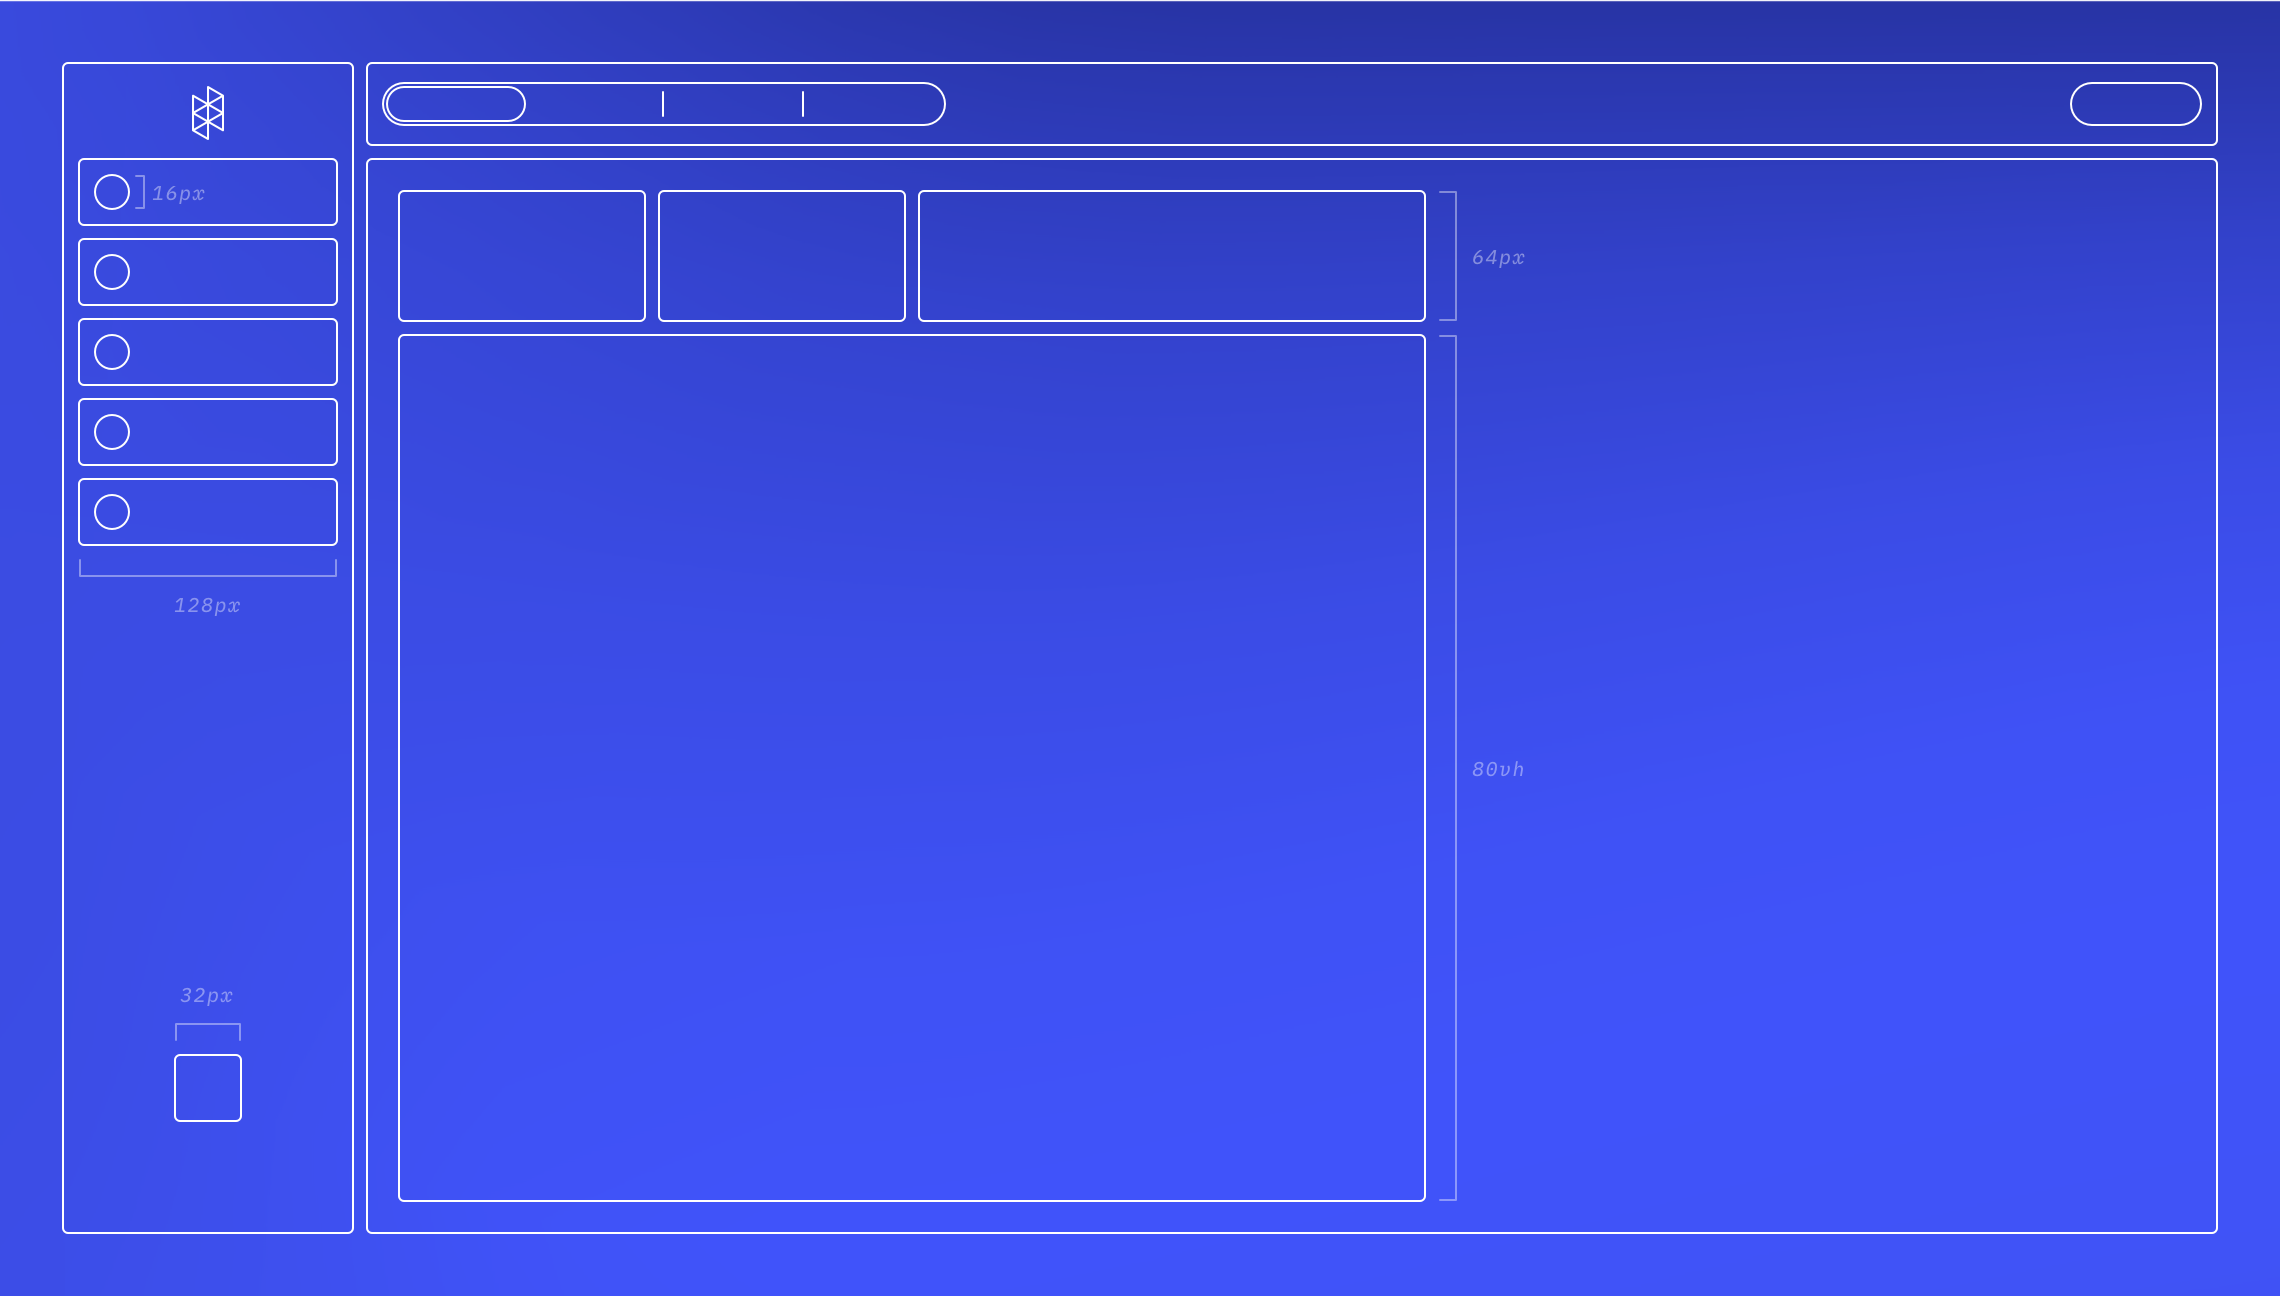 Blueprint of the Hologram Dashboard